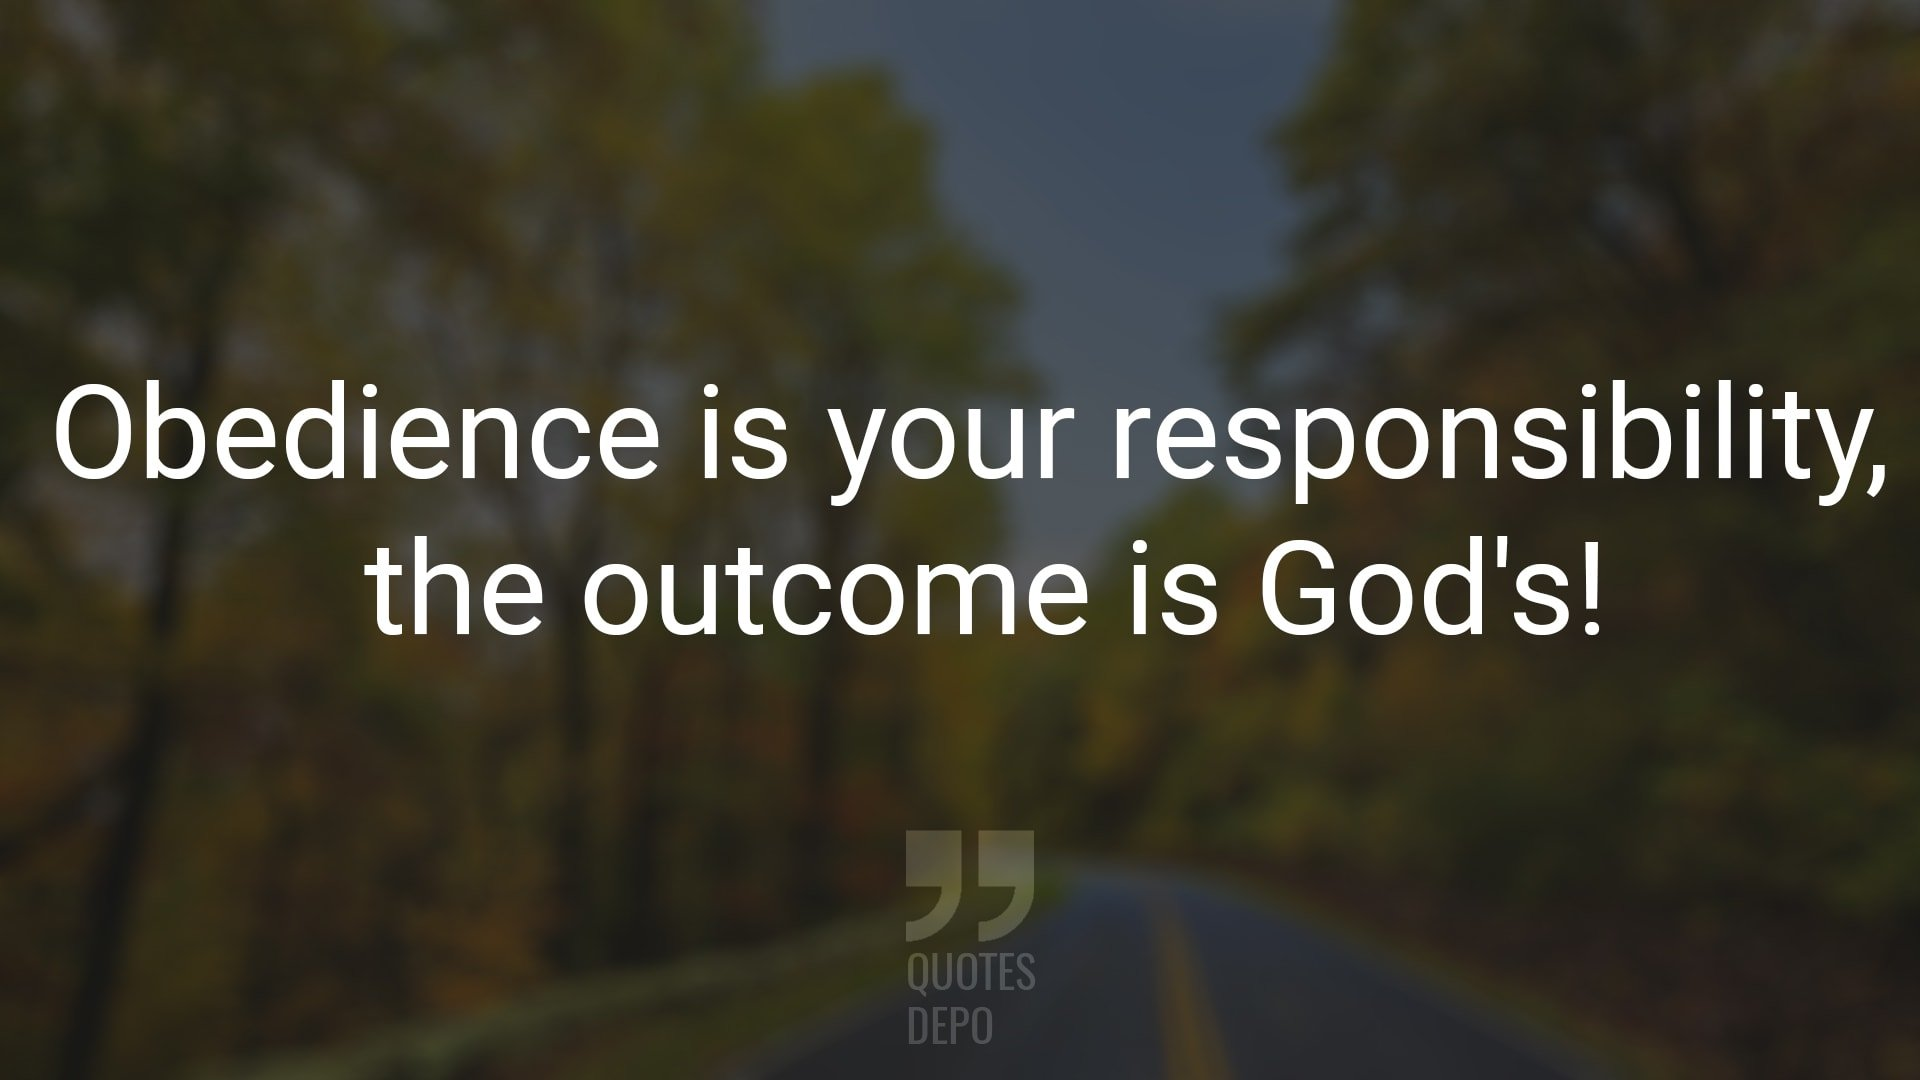 Obedience is Your Responsibility